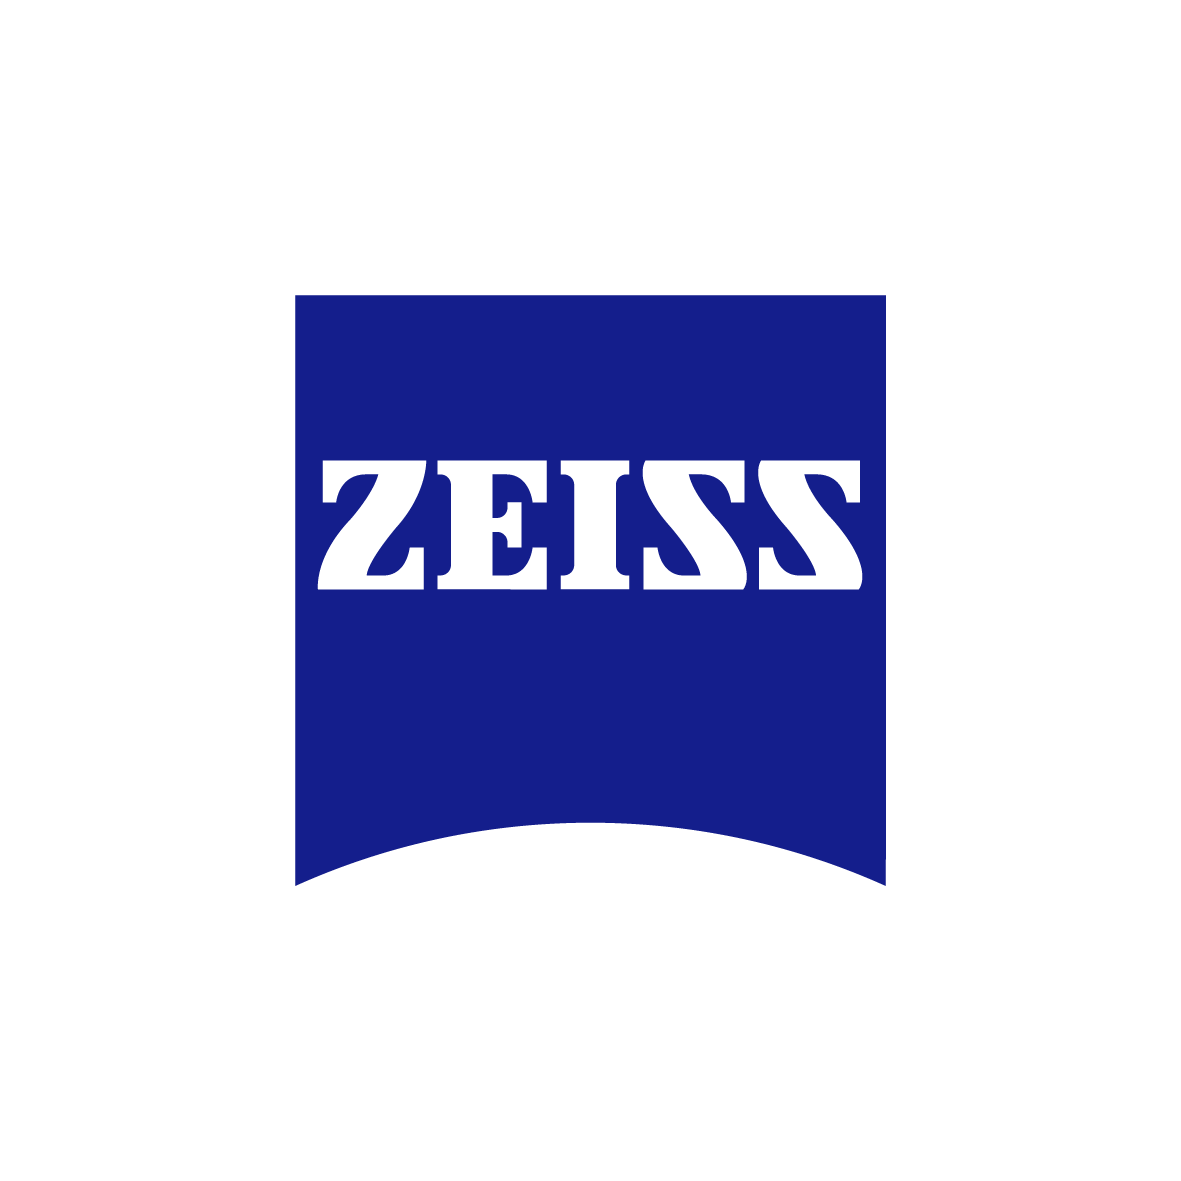 Carl Zeiss Digital Innovation AG